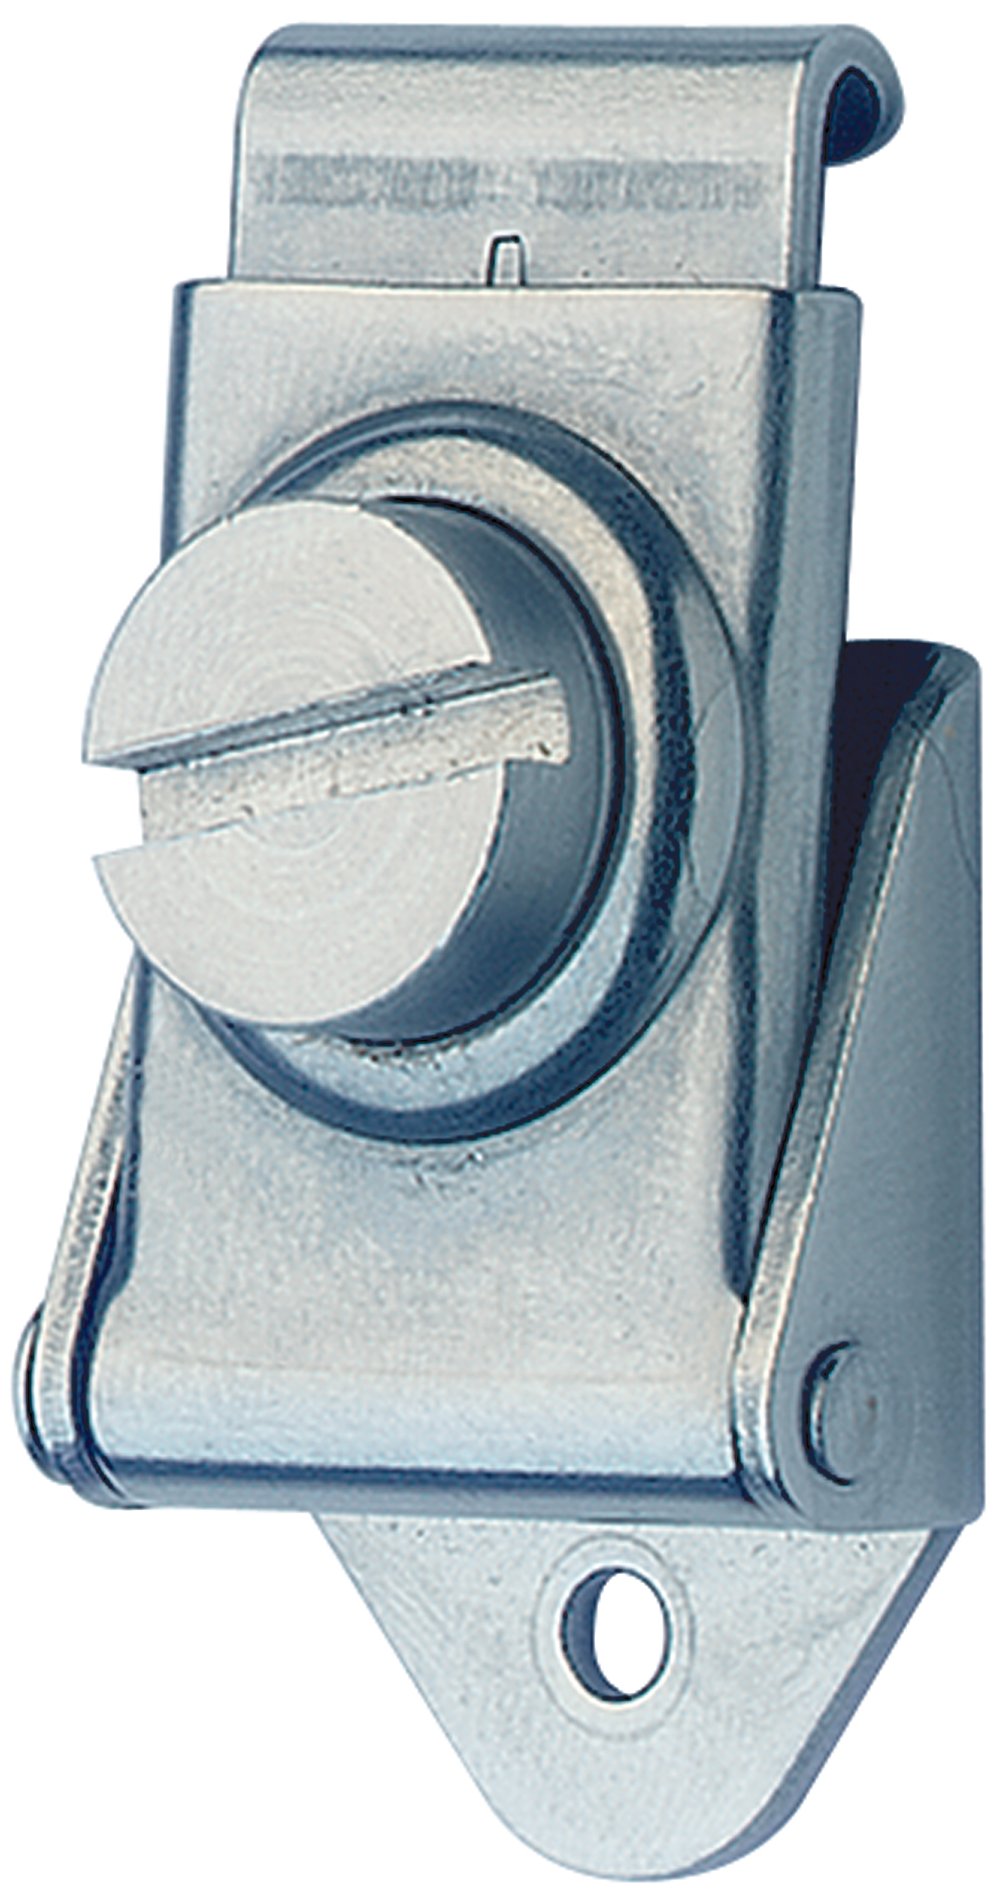 Rotary Turn Latch Mild Steel Zinc Plate Passivate (Silver Blue)